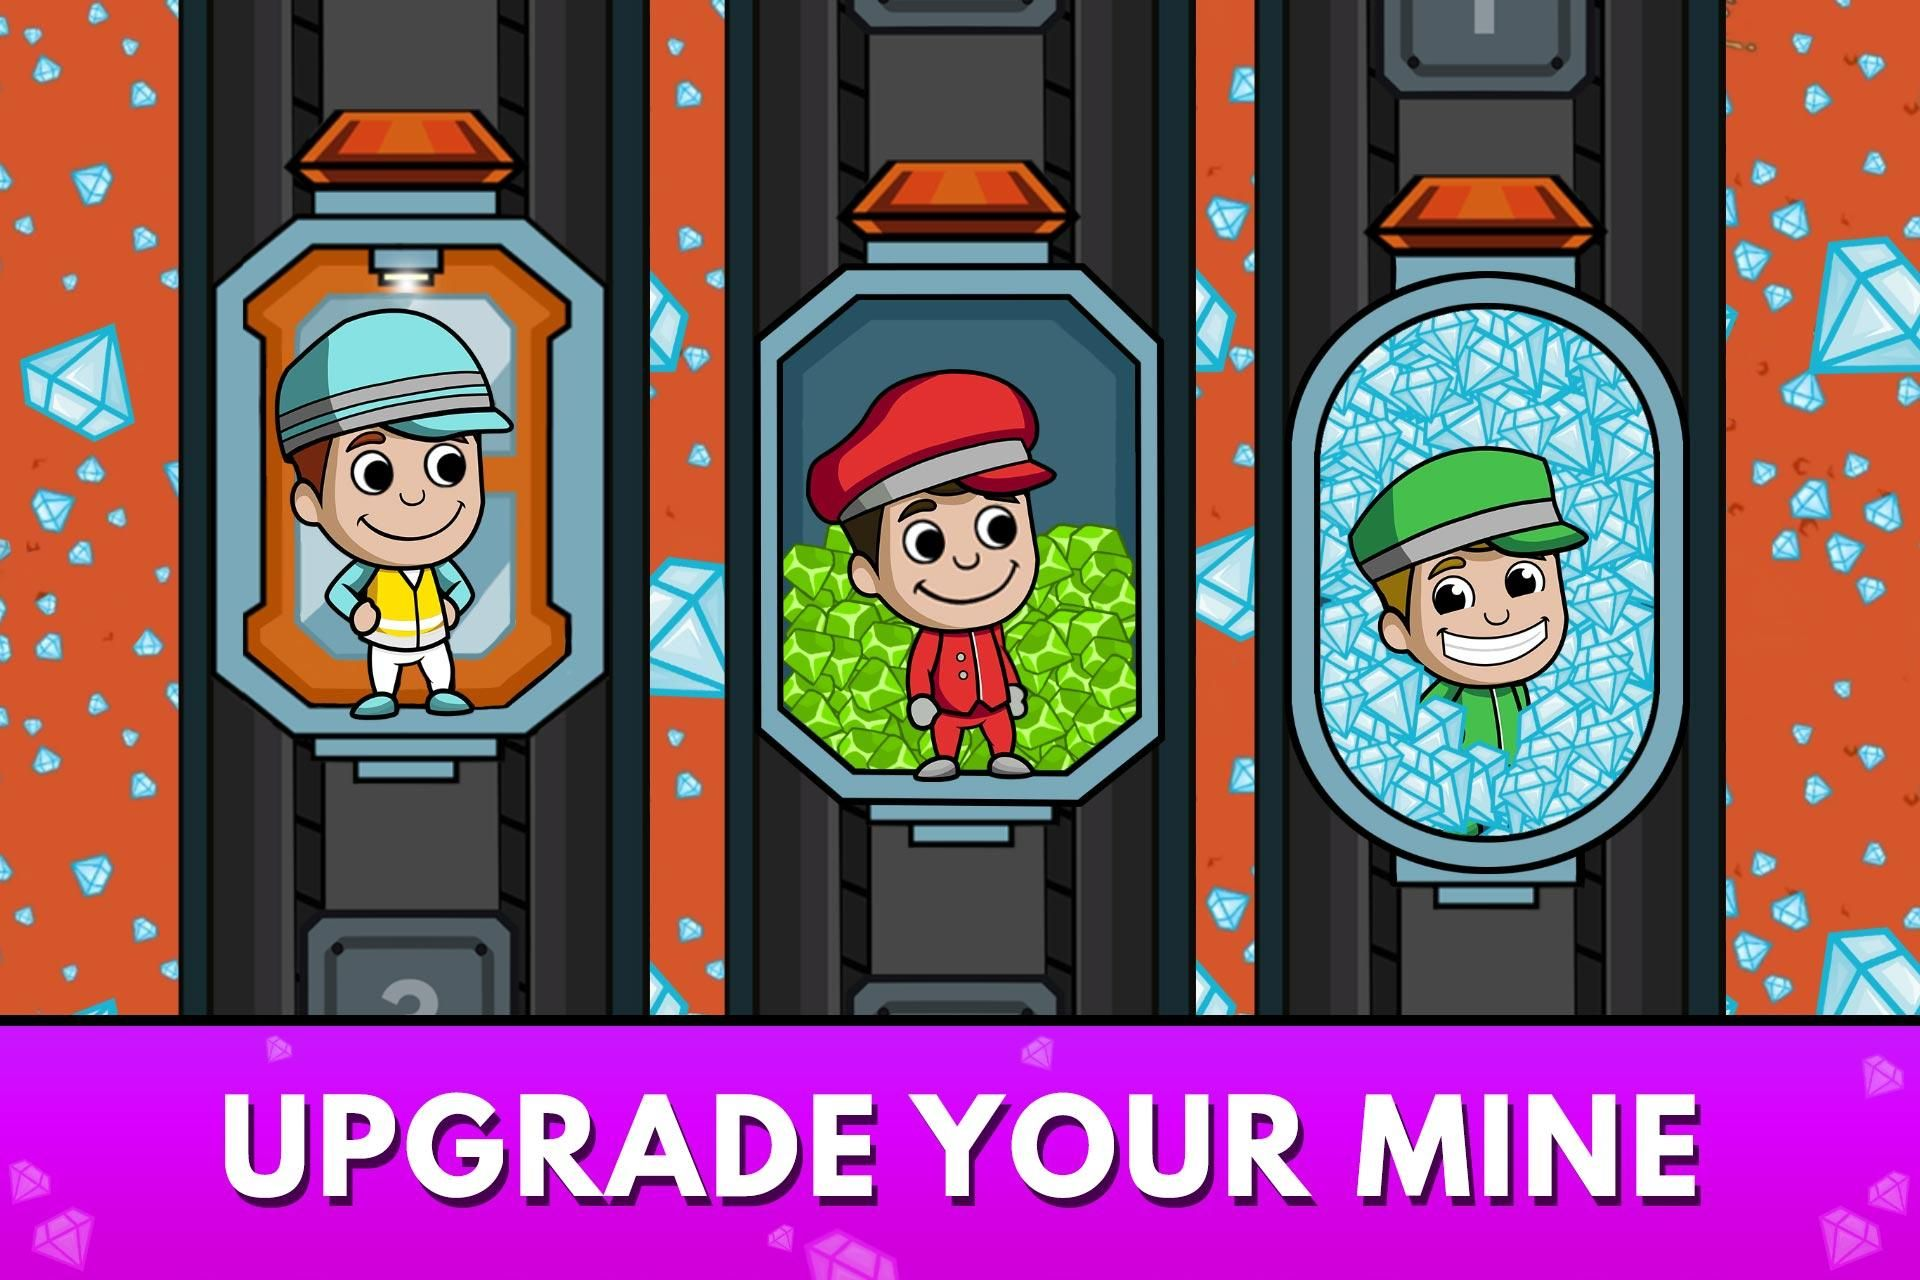 Download No ADS Idle Miner Tycoon MOD APK 2.71.0